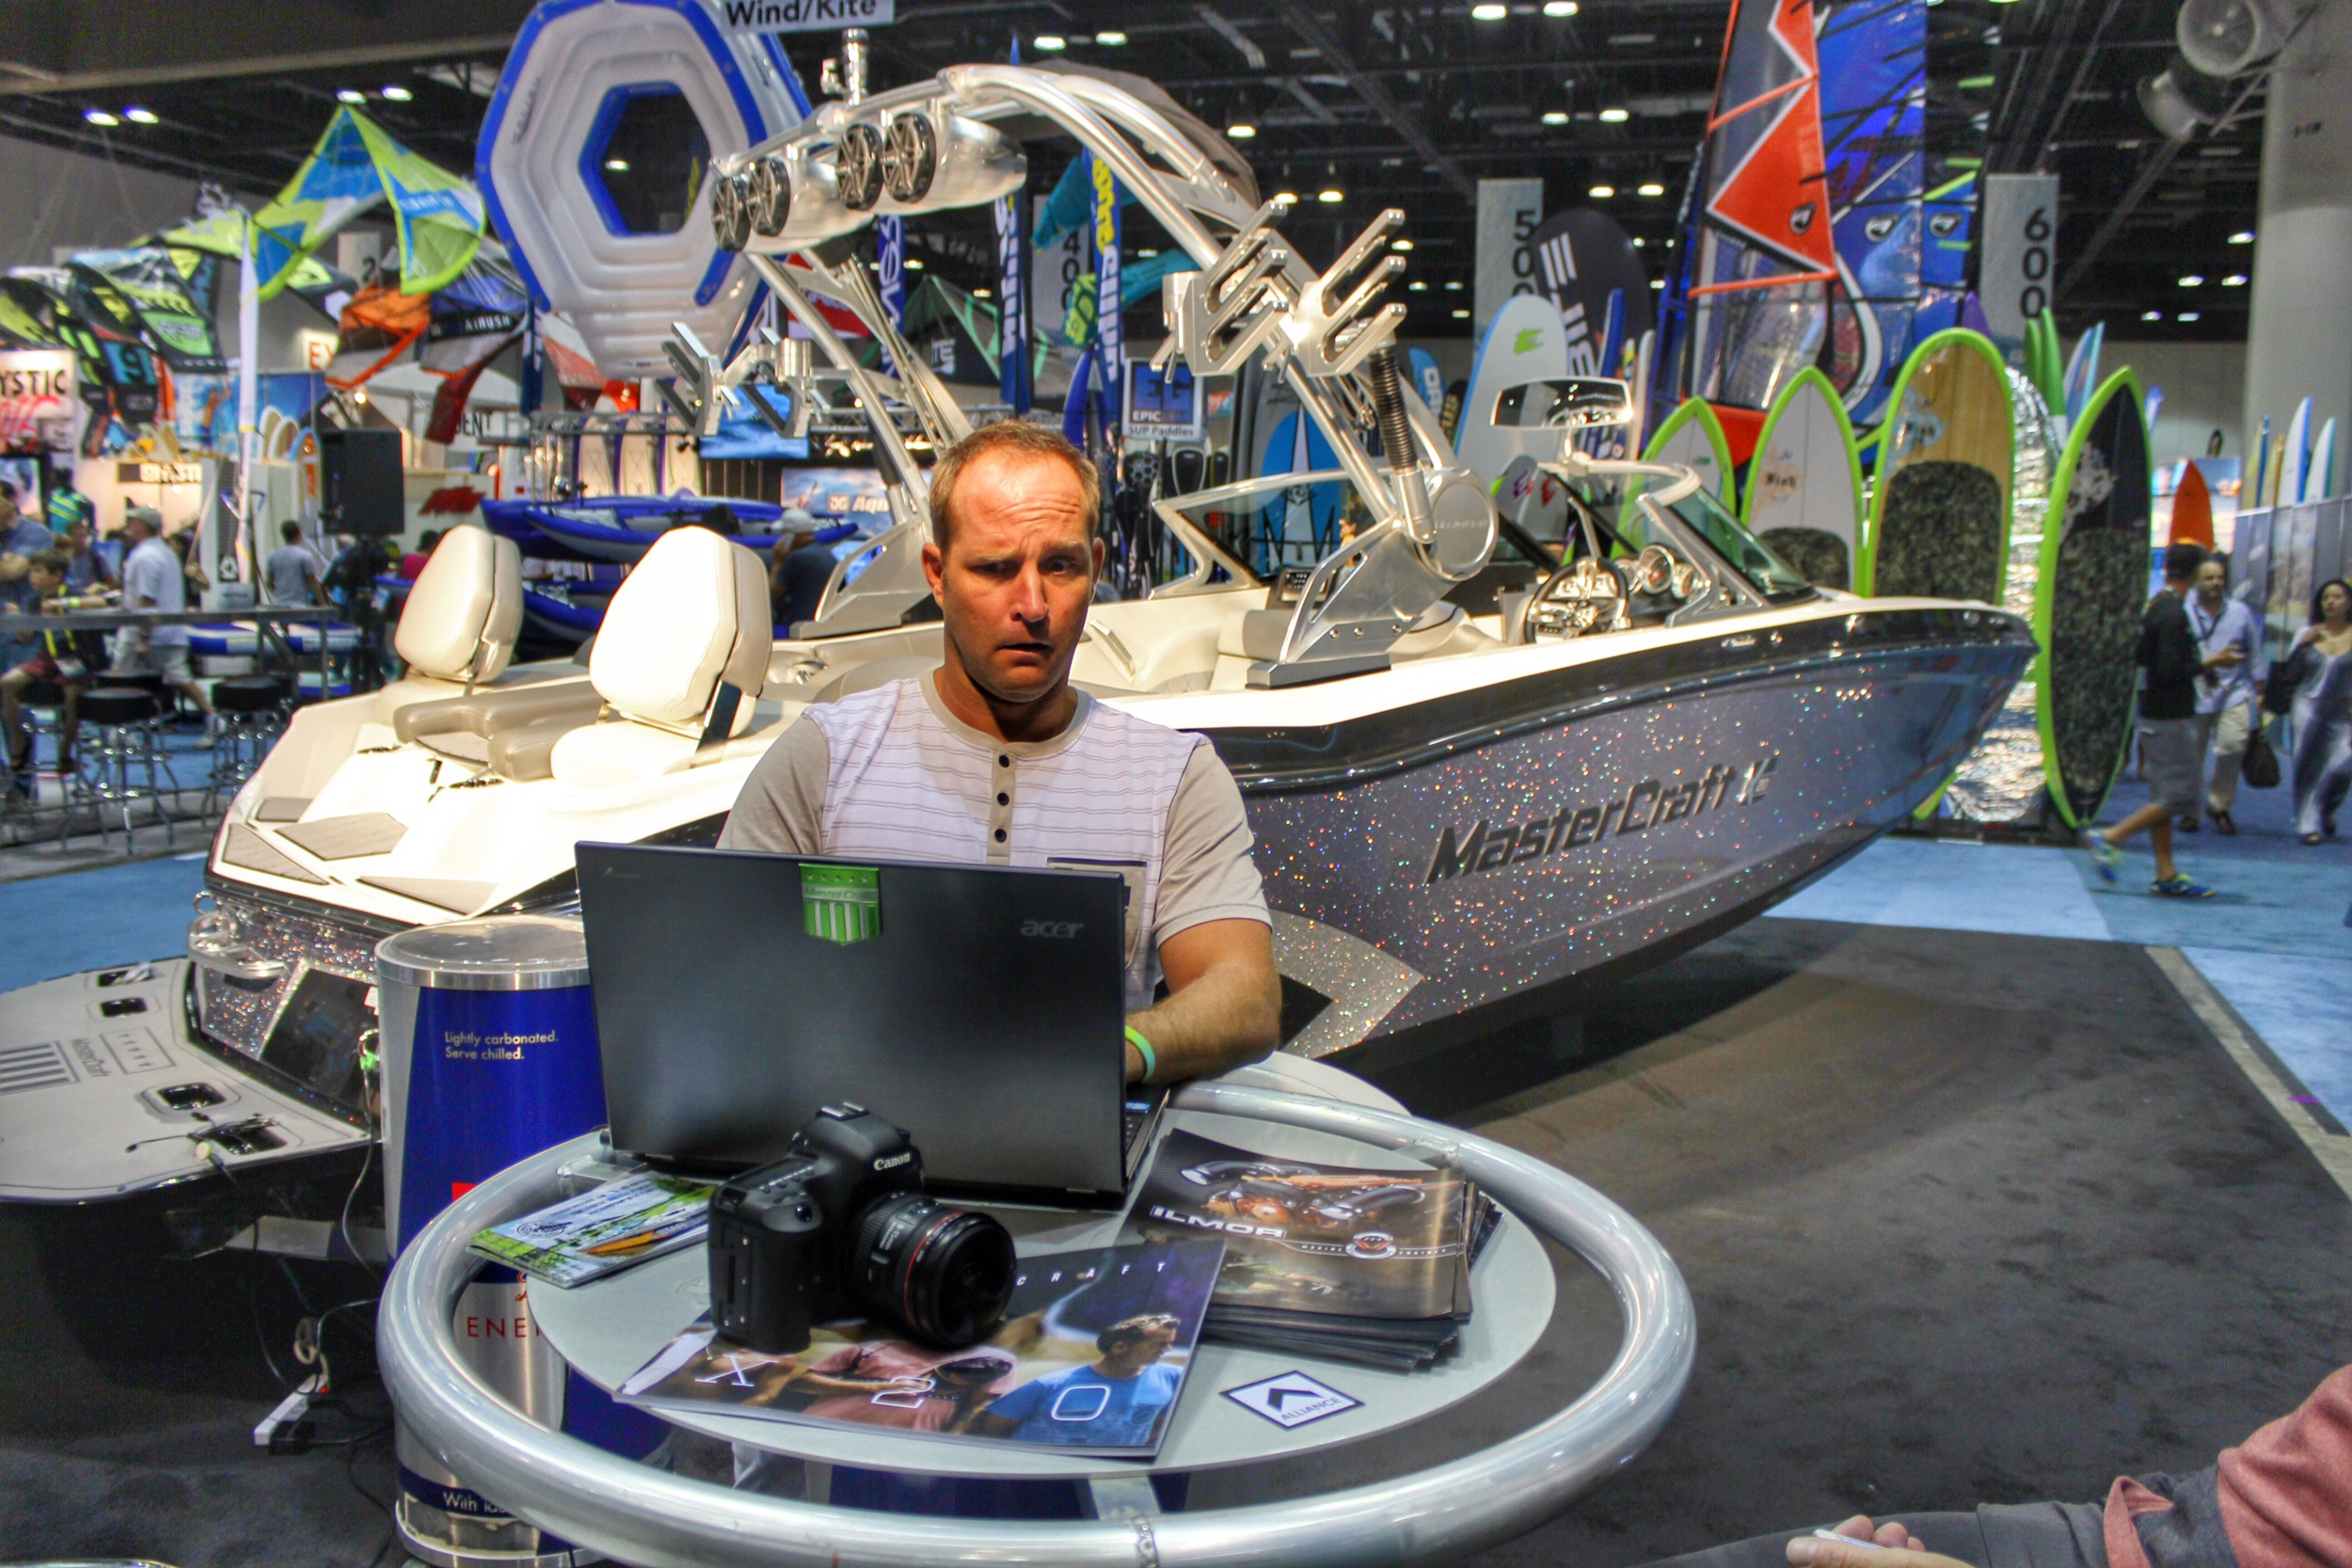 Zane Schwenk grinding at the MasterCraft Booth